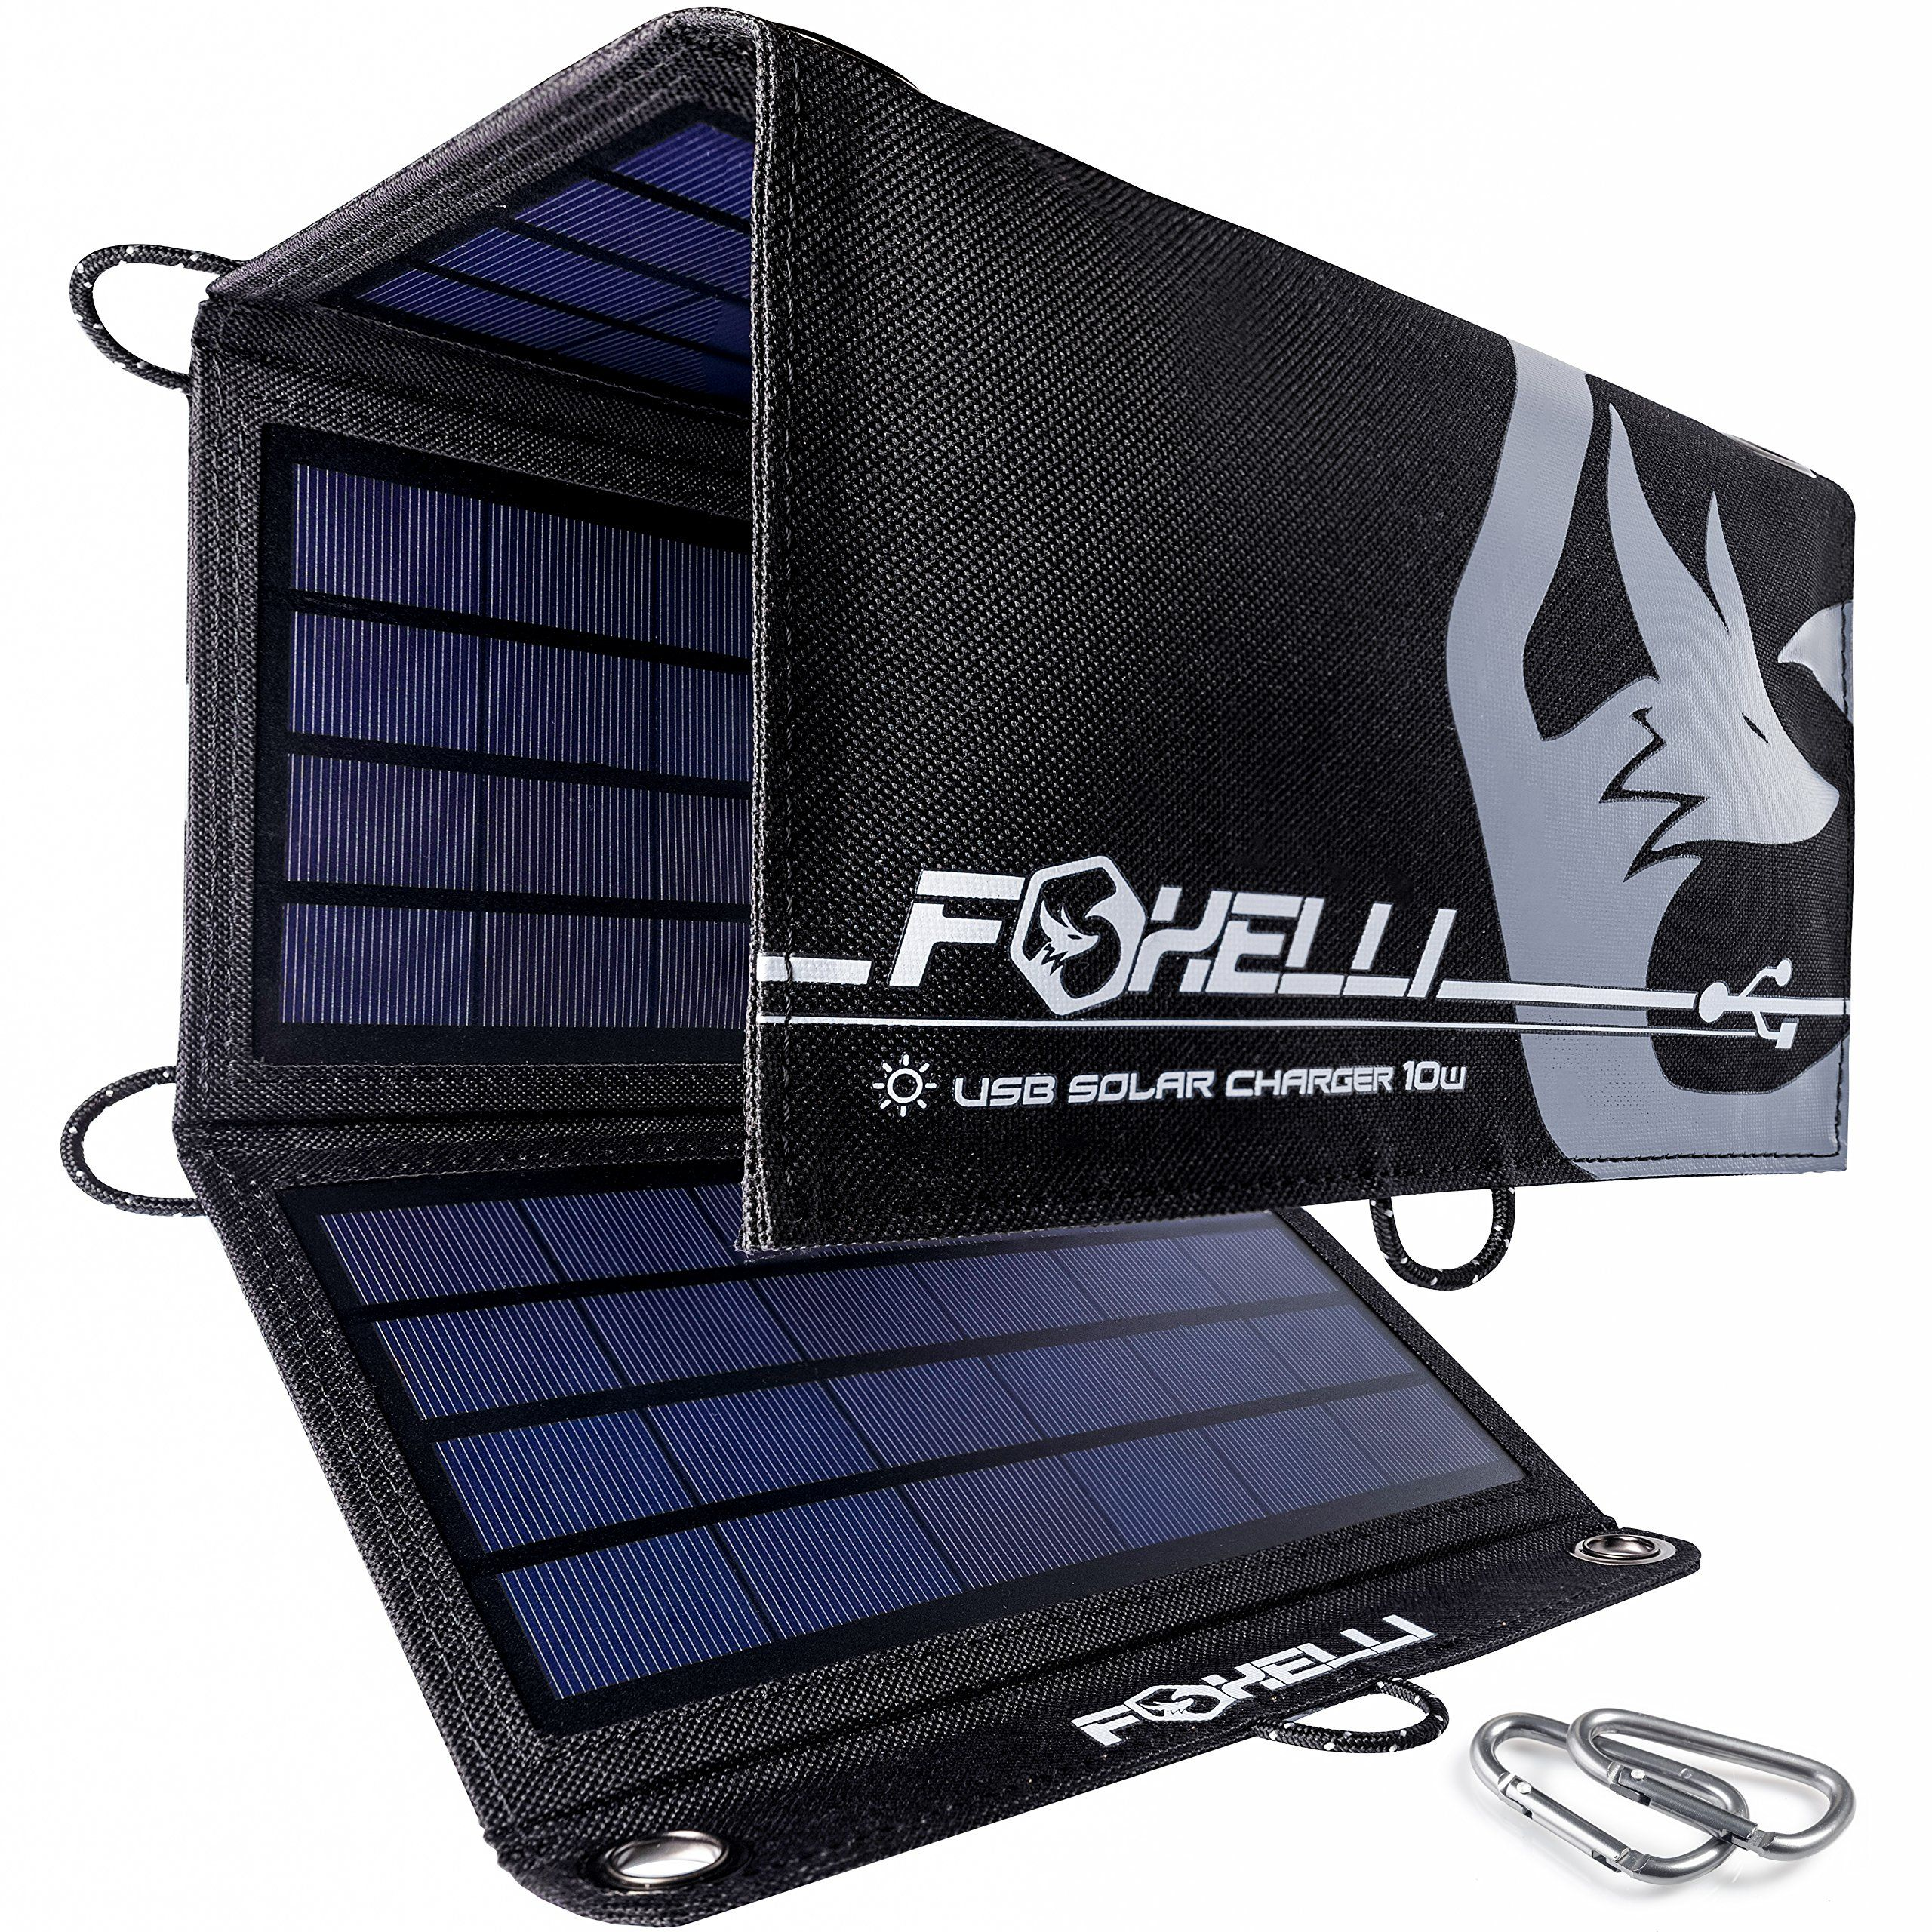 Foxelli Dual Usb Solar Charger 10w Foldable Solar Panel Phone Charger For Iphone X 8 7 6s Solar Gadgets Products Portable Solar Power Solar Power Charger